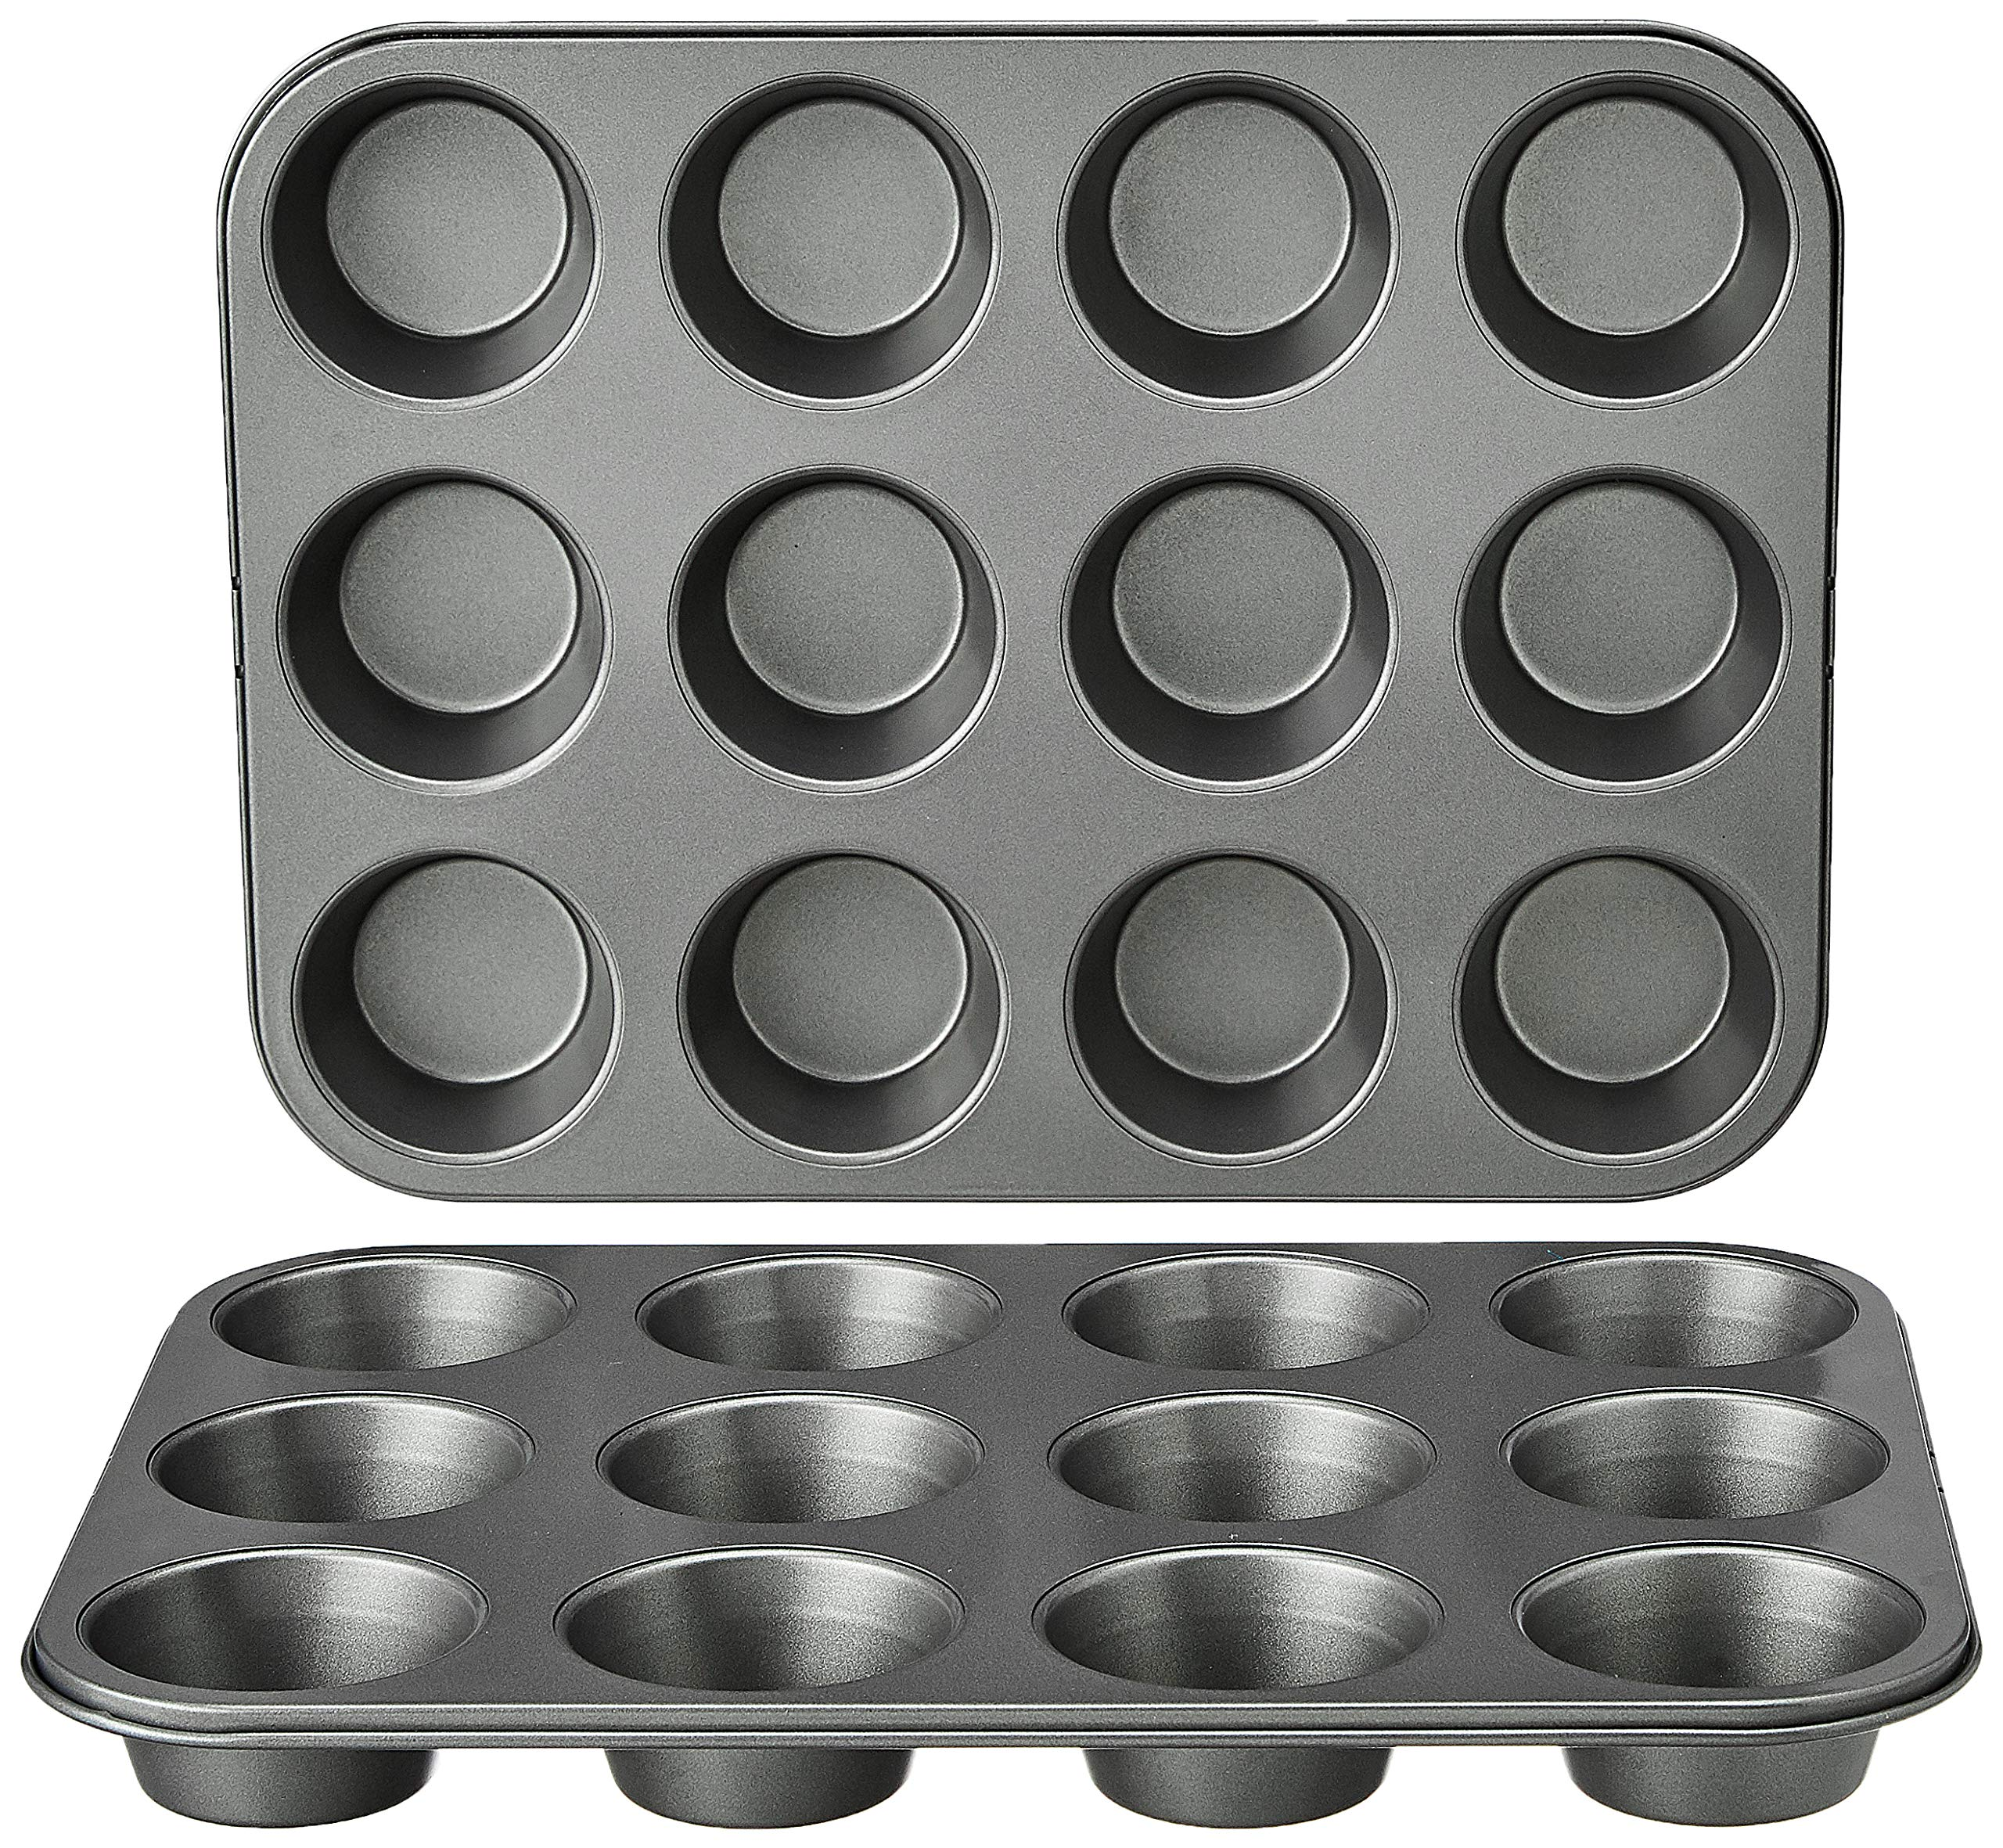 Amazon Basics Nonstick Muffin Baking Pan, 12 cups - Set of 2